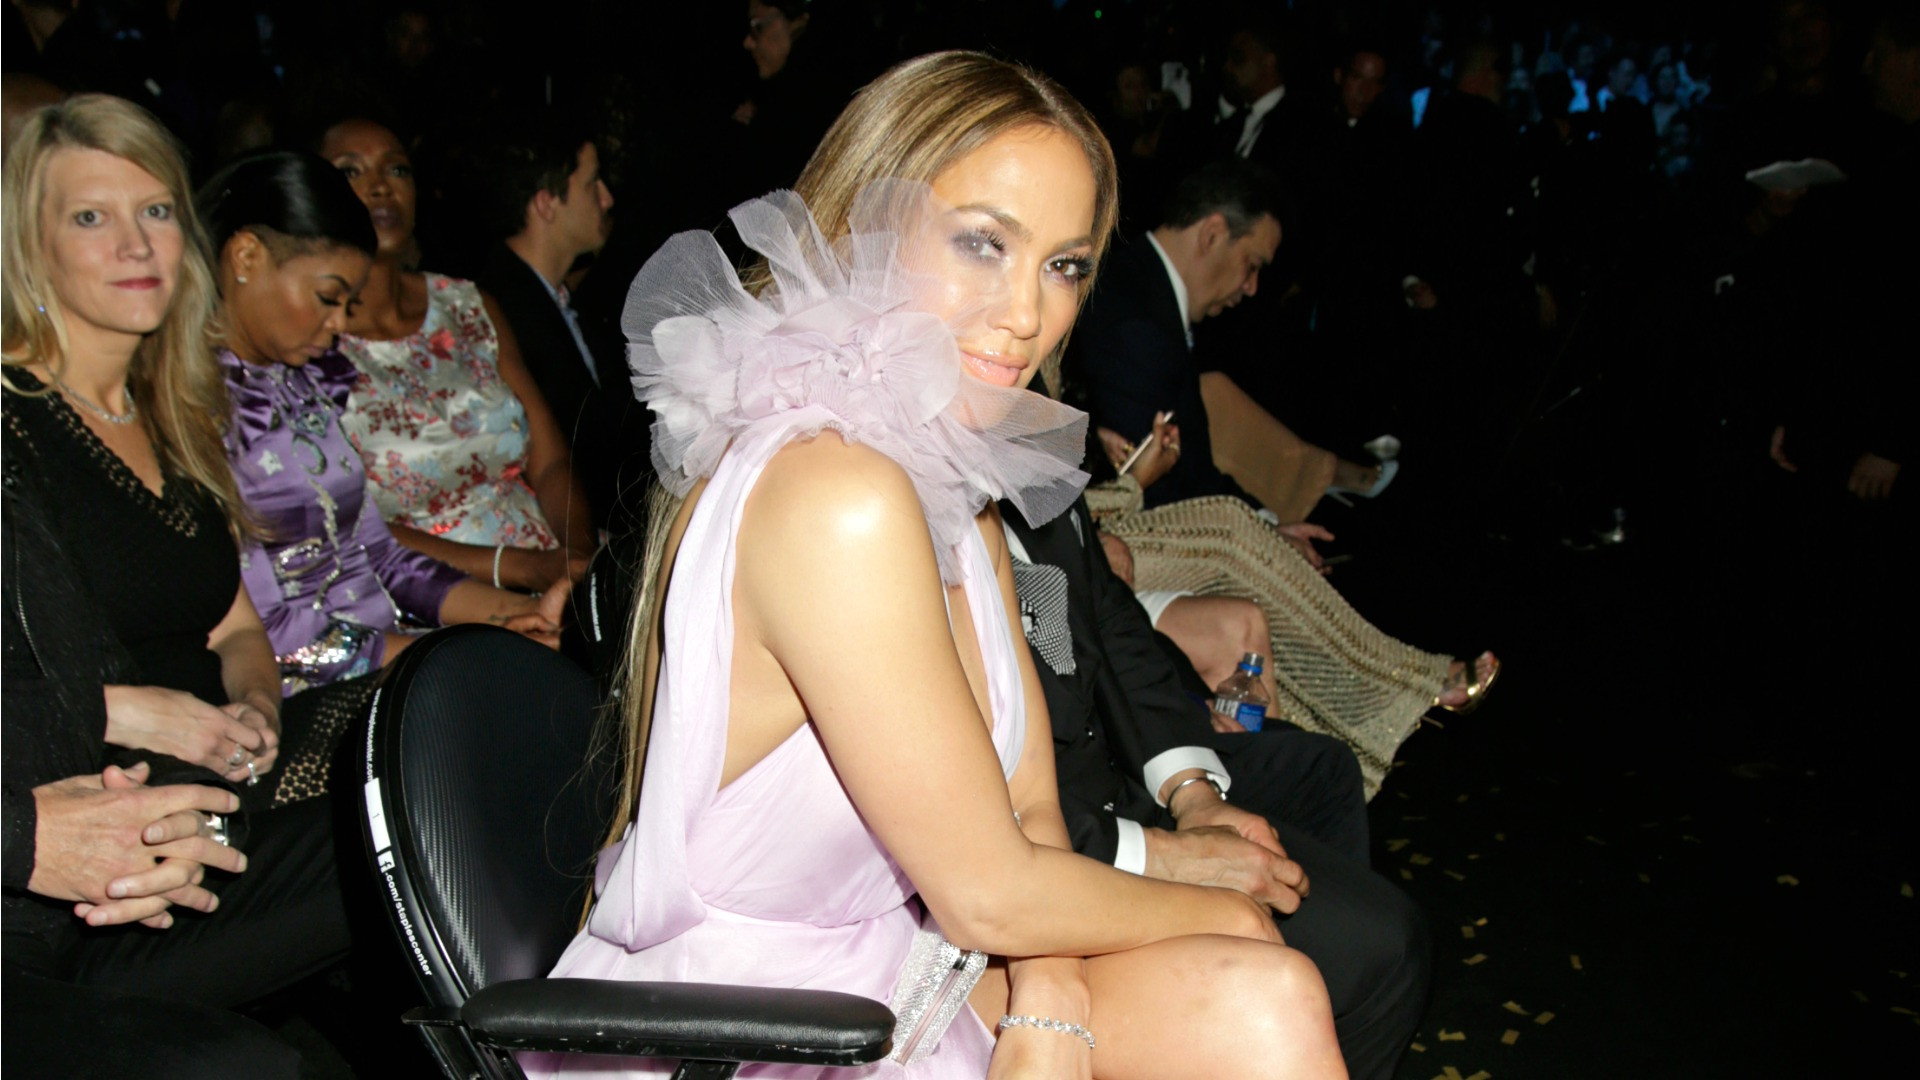 Peekaboo! We see you, Jennifer Lopez, even if you try hiding behind your pink tulle neckline.